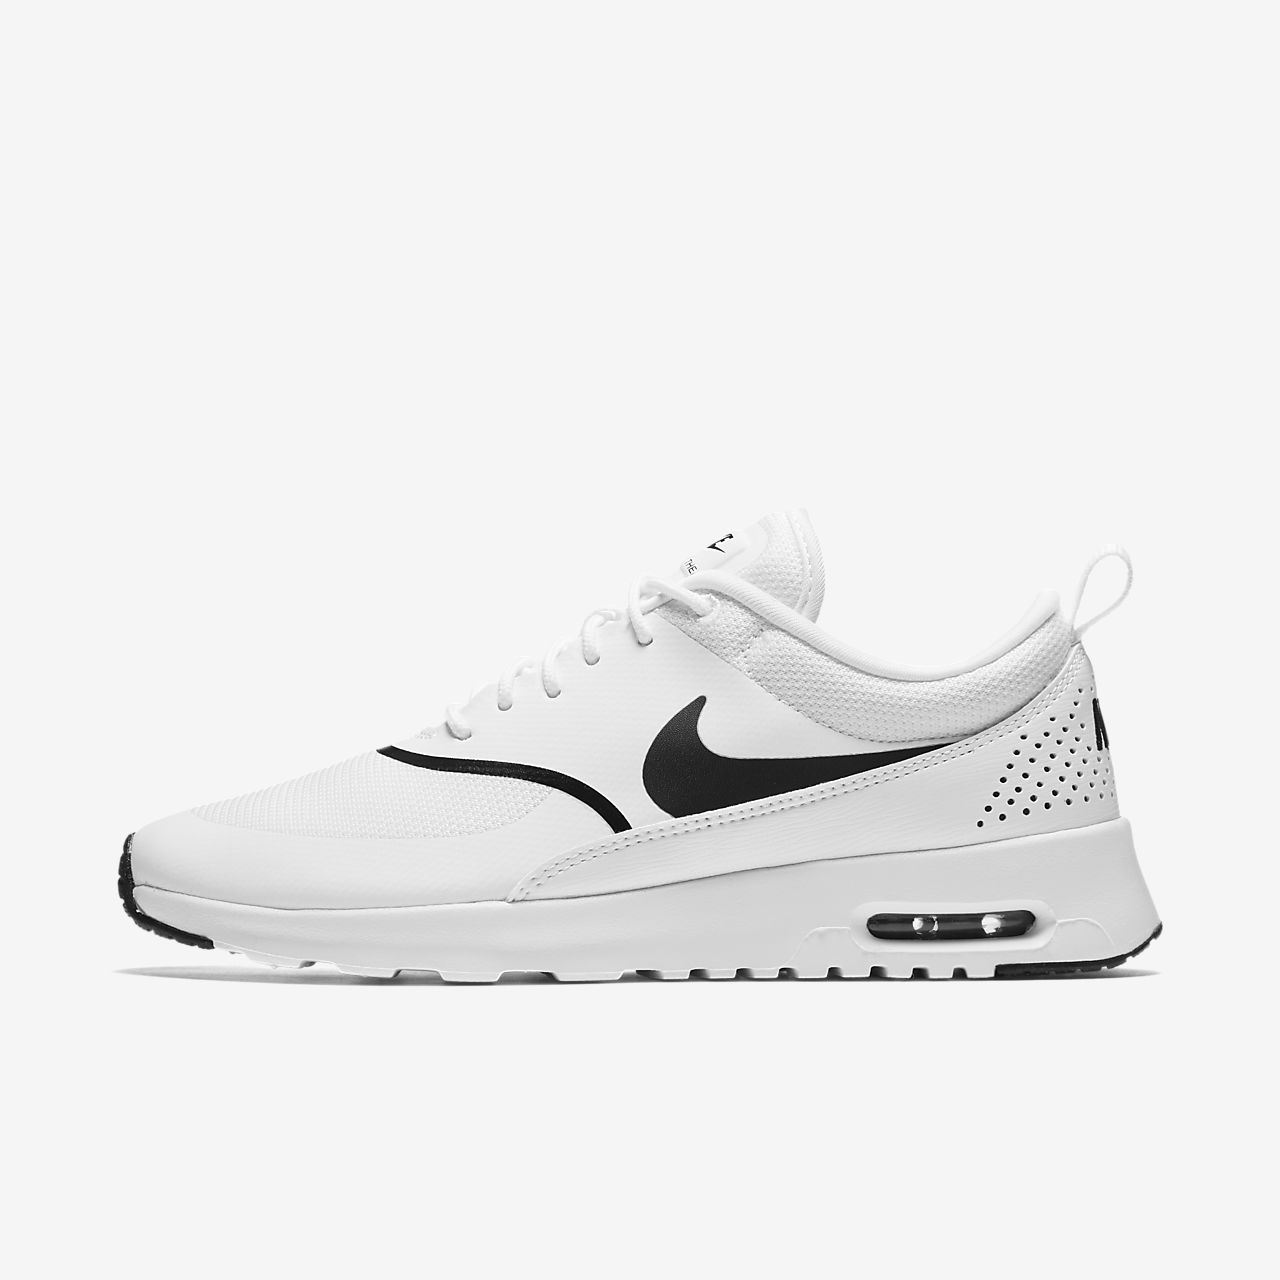 reputable site 68fa3 5500b ... Nike Air Max Thea Women s Shoe